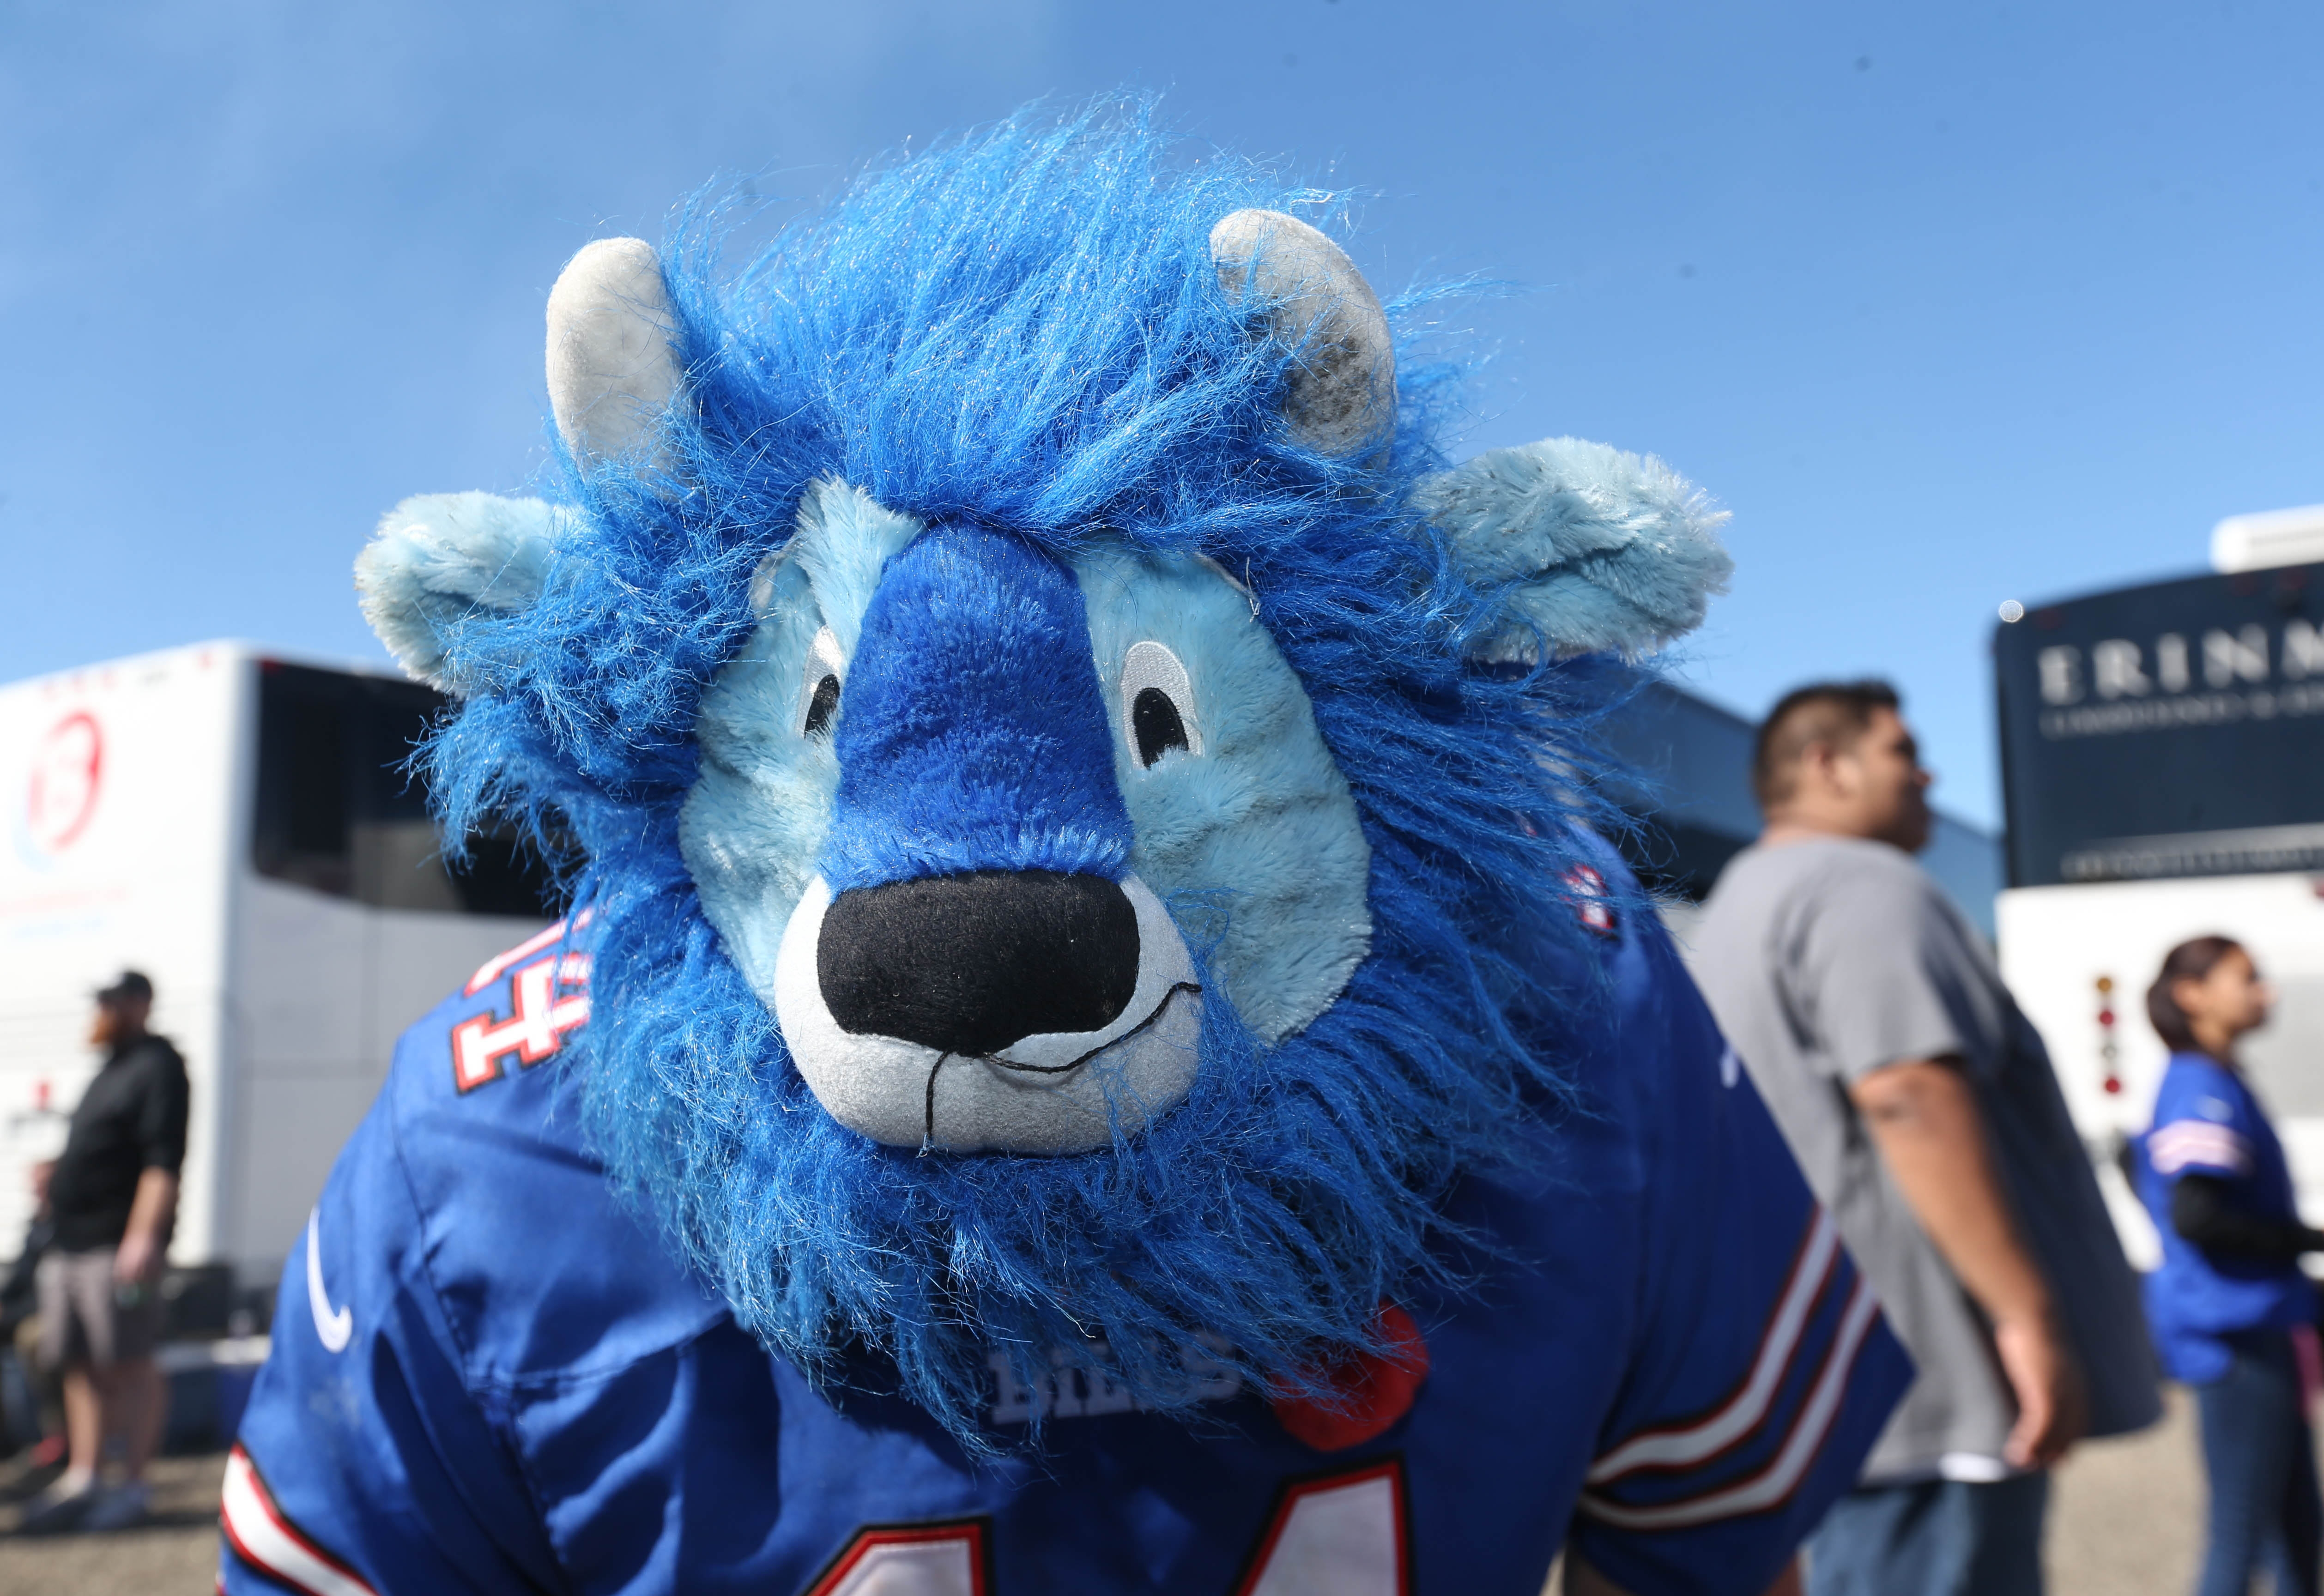 Tailgating before a Buffalo Bills game is an integral part of game-day fun around New Era Field, in Orchard Park. Tailgaters bring an array of food and drink and visit with their neighbors prior to game time, Sunday, Sept. 25, 2016. Season ticket holder, Sean Kearnes of Cambridge, Ontario, wears a Billy Buffalo hat. He leans over to show the top of his hat. (Sharon Cantillon/Buffalo News)